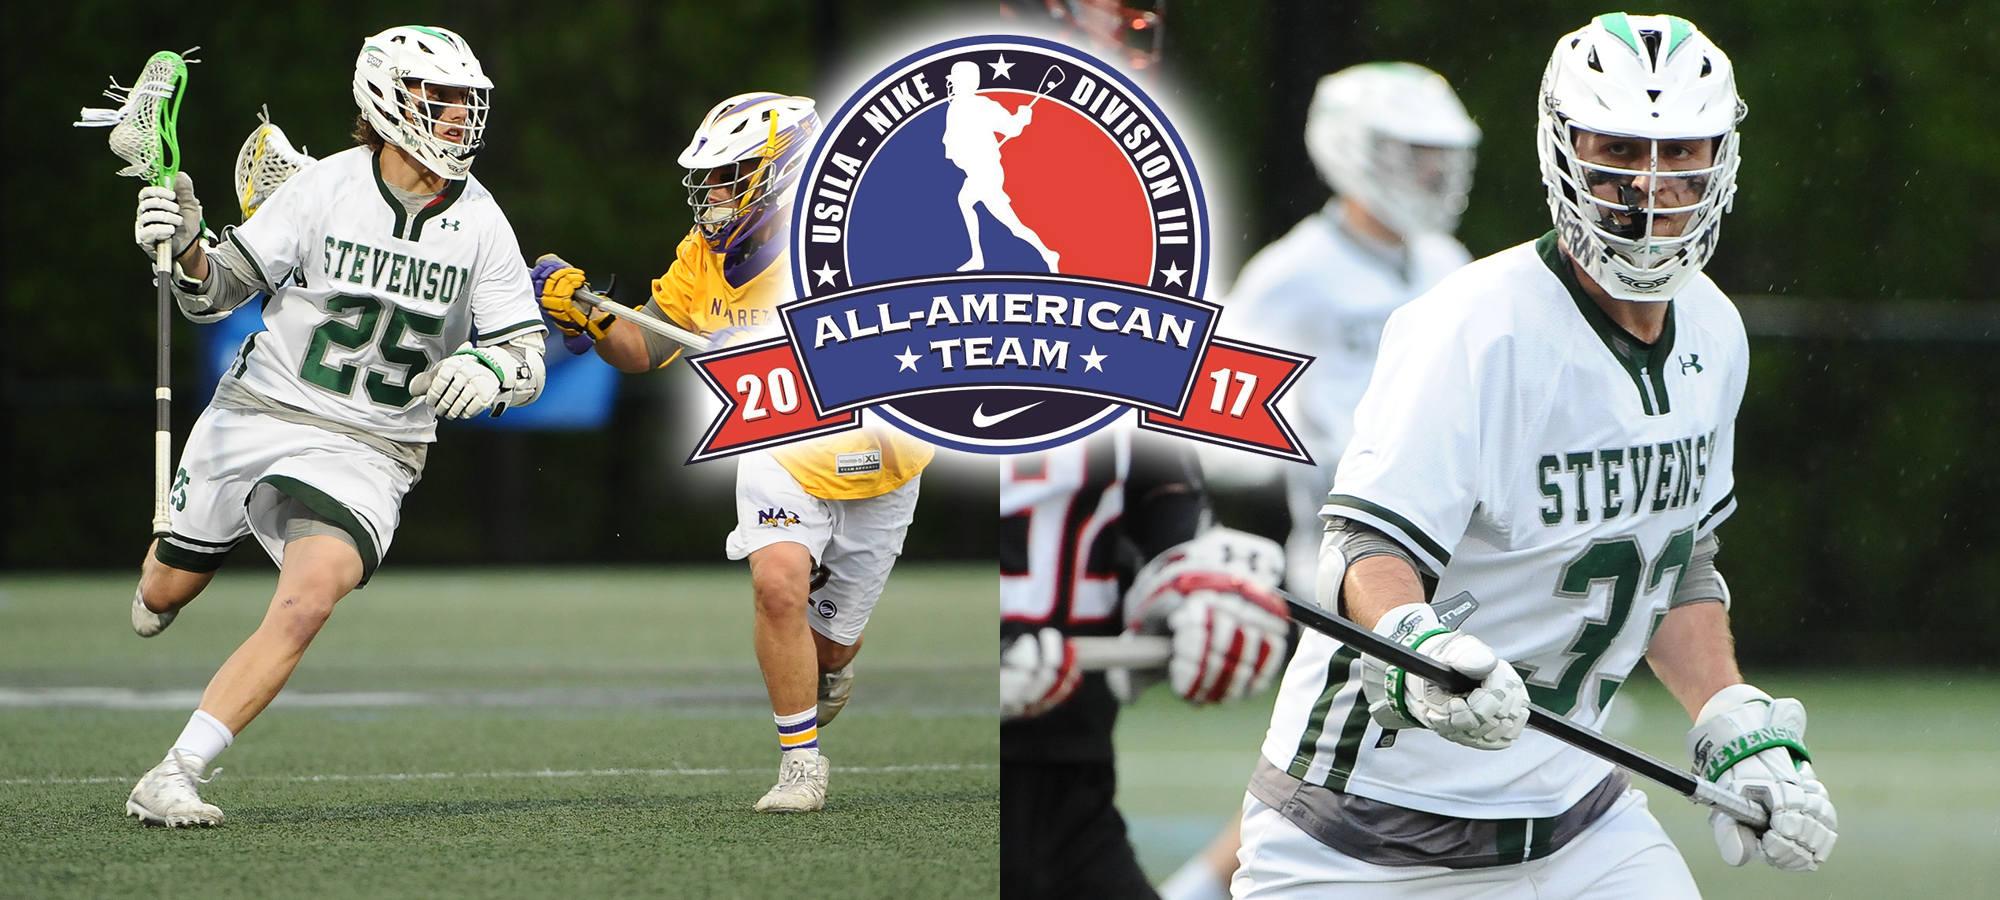 Kyle D'Onofrio, Dominic DeFazio Earn USILA All-America Honors